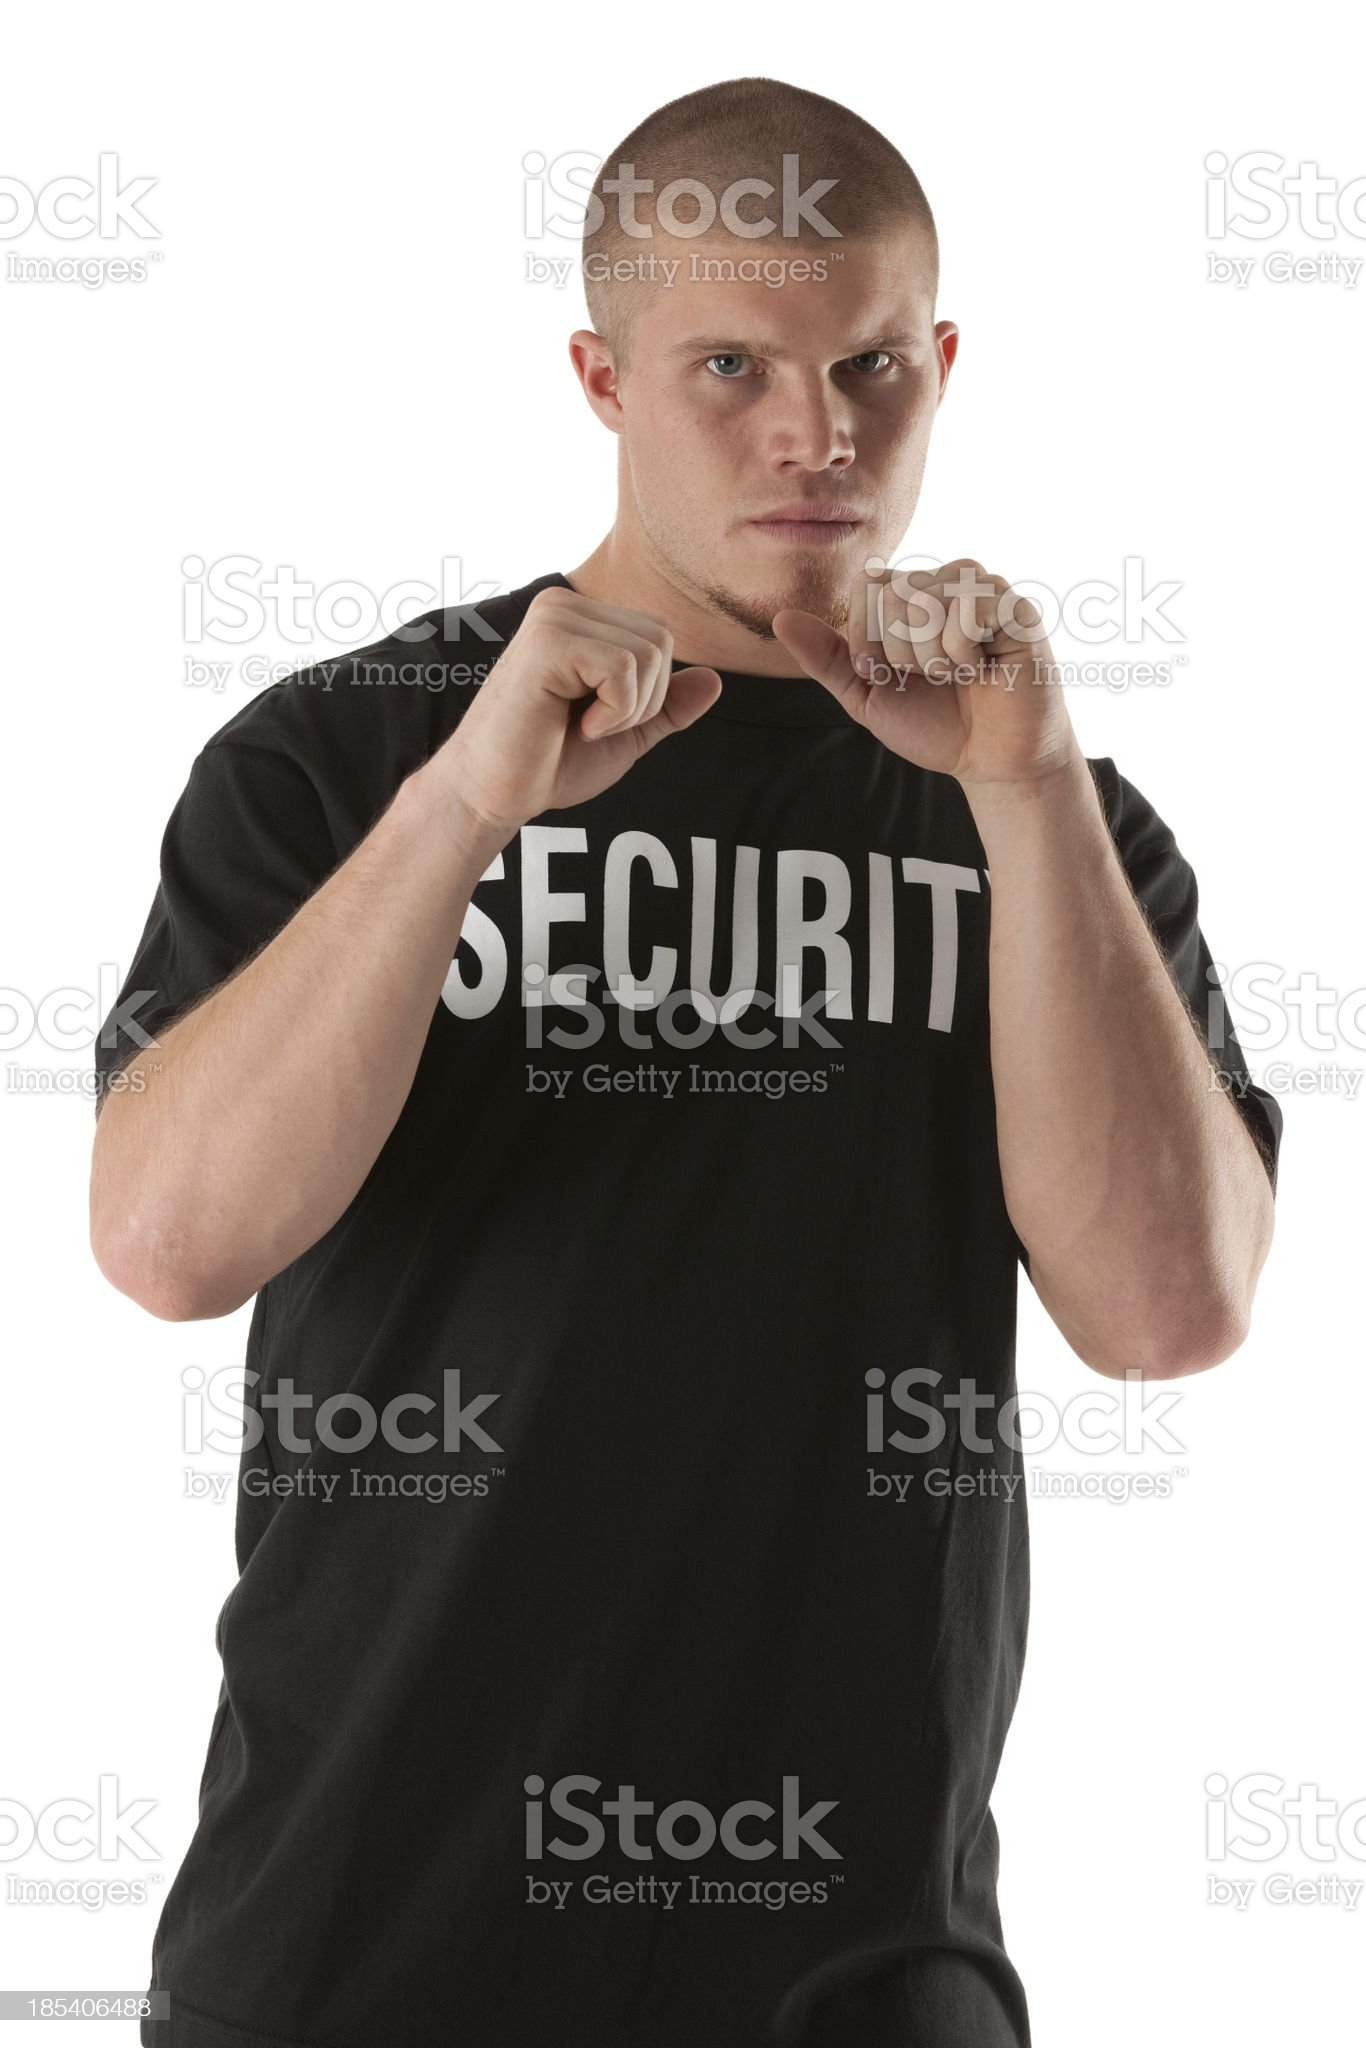 Portrait of a security guard royalty-free stock photo